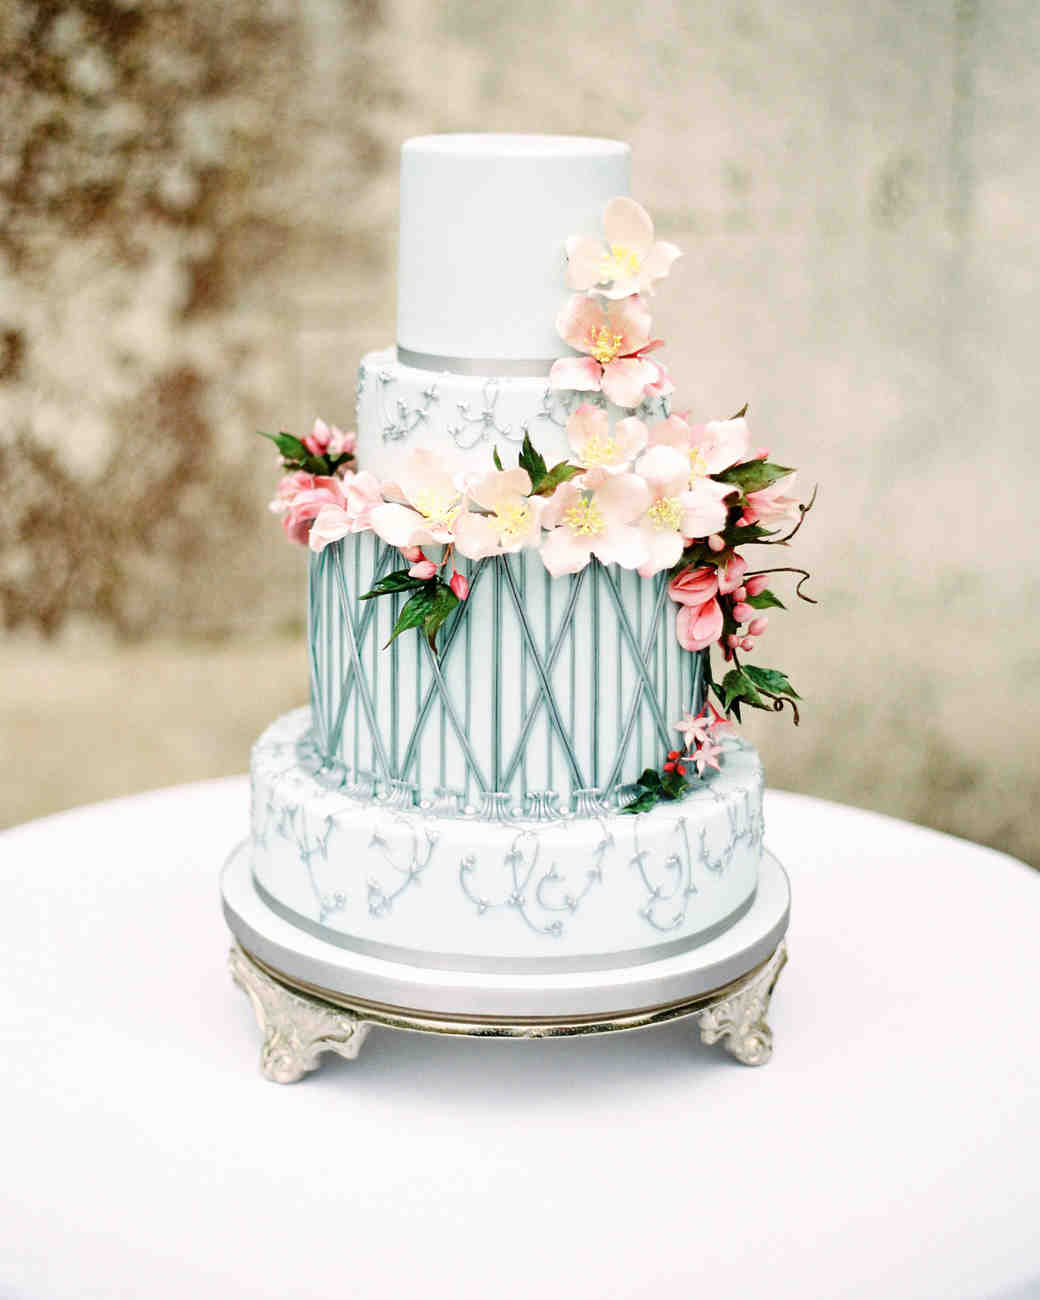 25 wedding cake design ideas thatll wow your guests martha 25 wedding cake design ideas thatll wow your guests martha stewart weddings junglespirit Gallery